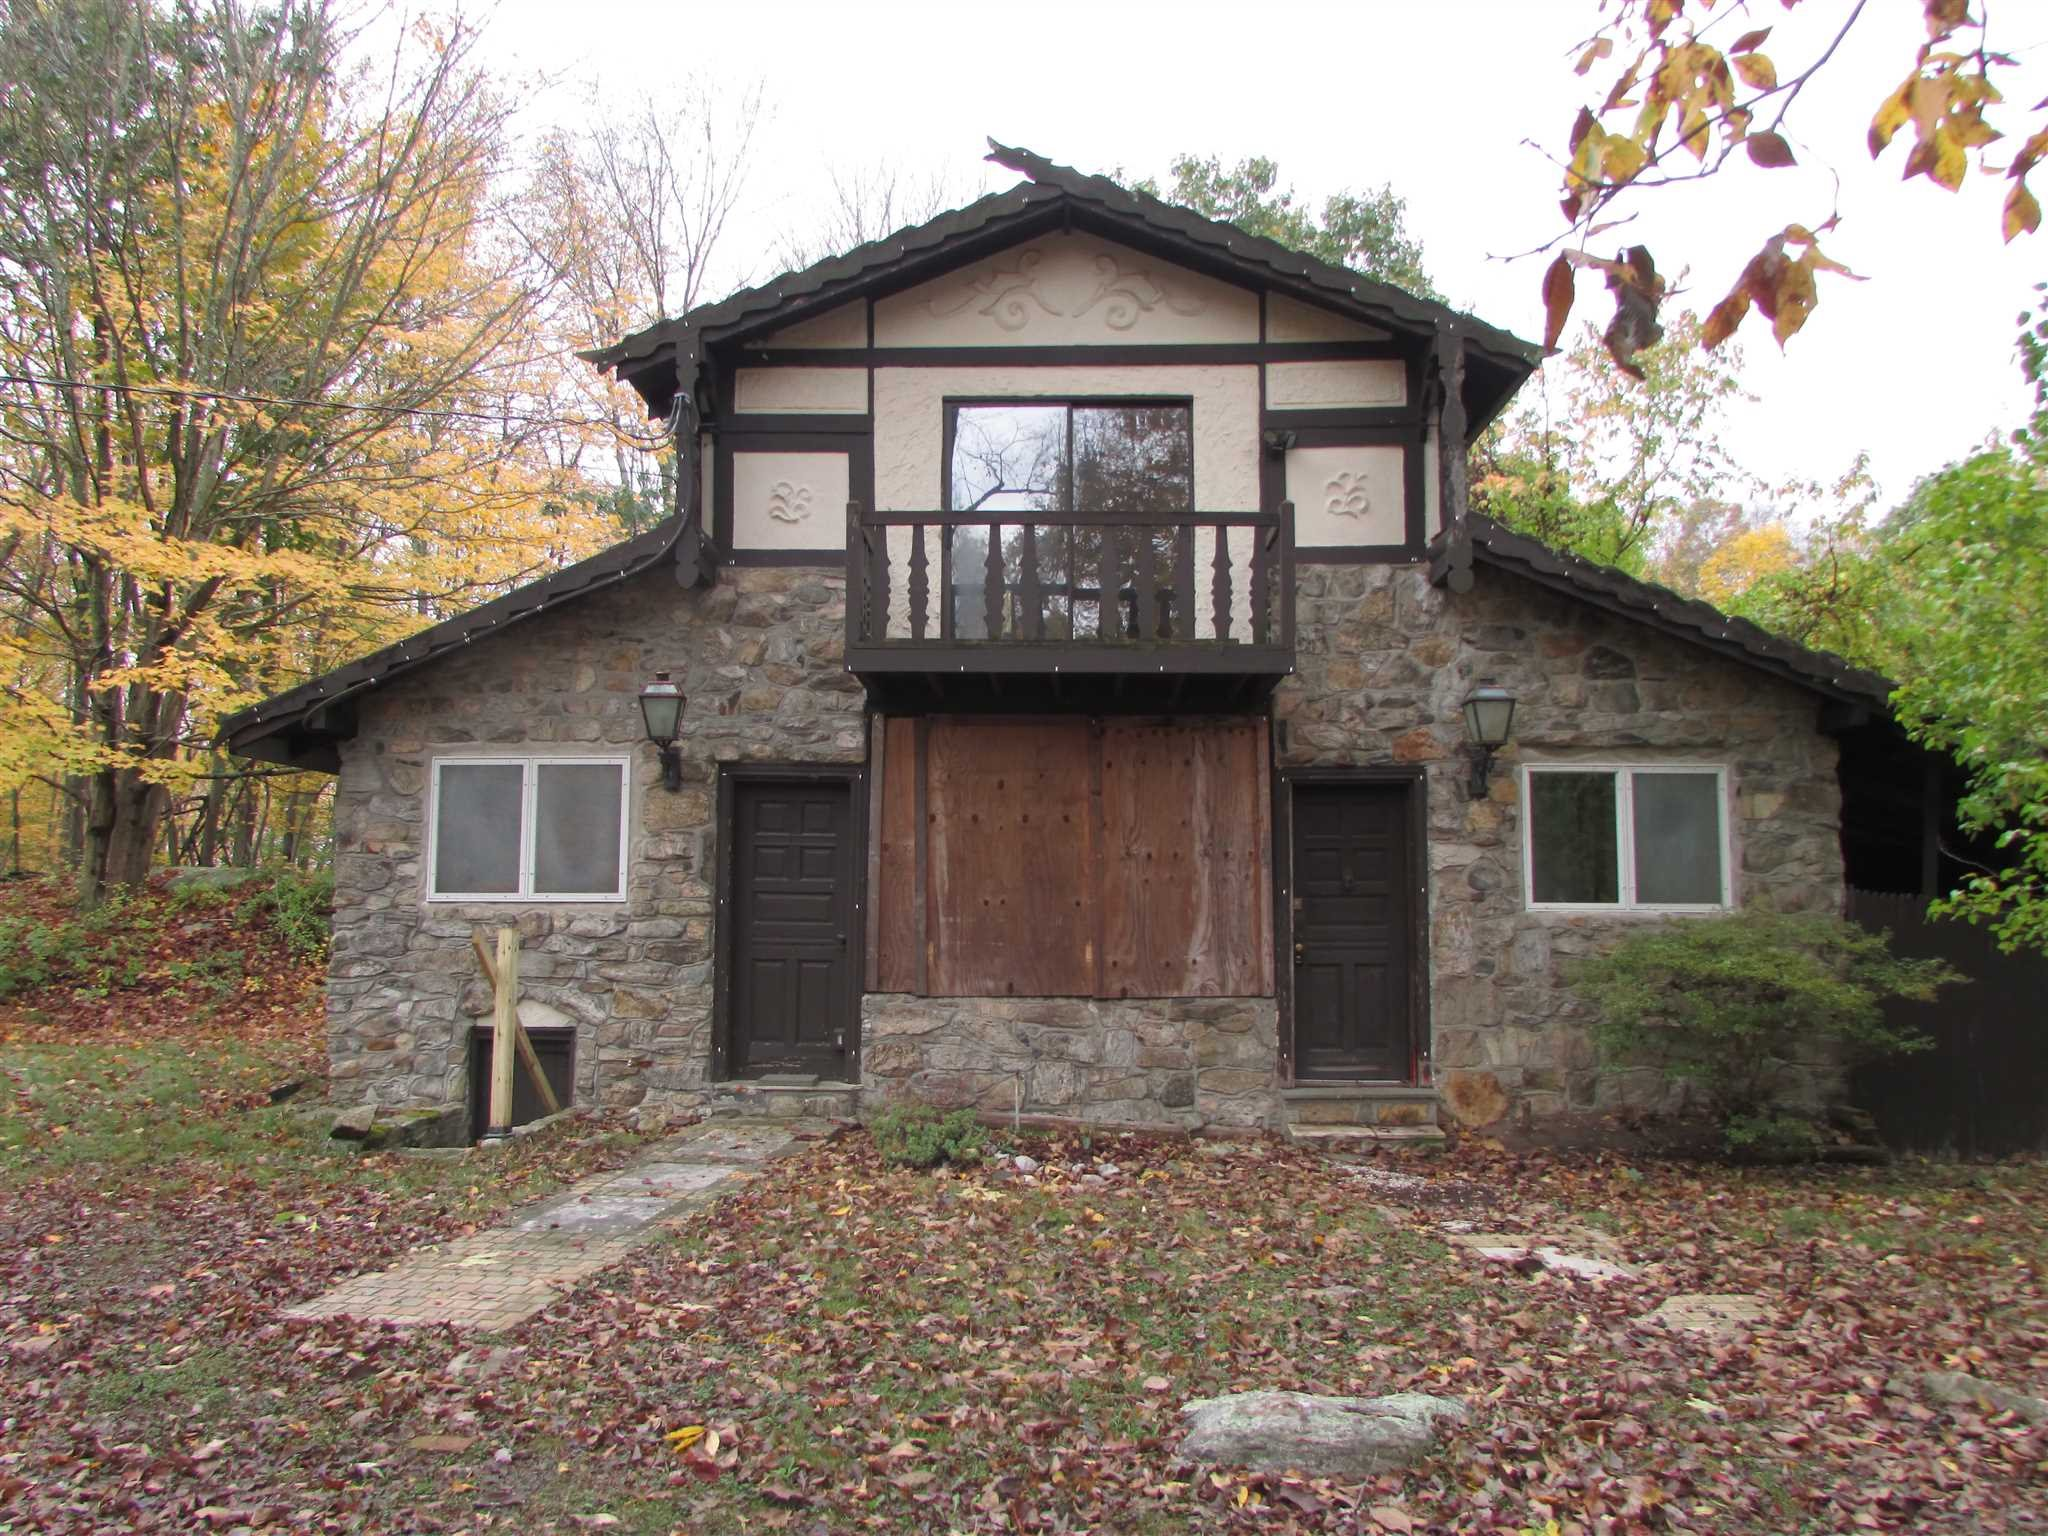 Single Family Home for Sale at 176 BIG ELM Road 176 BIG ELM Road Brewster, New York 10509 United States